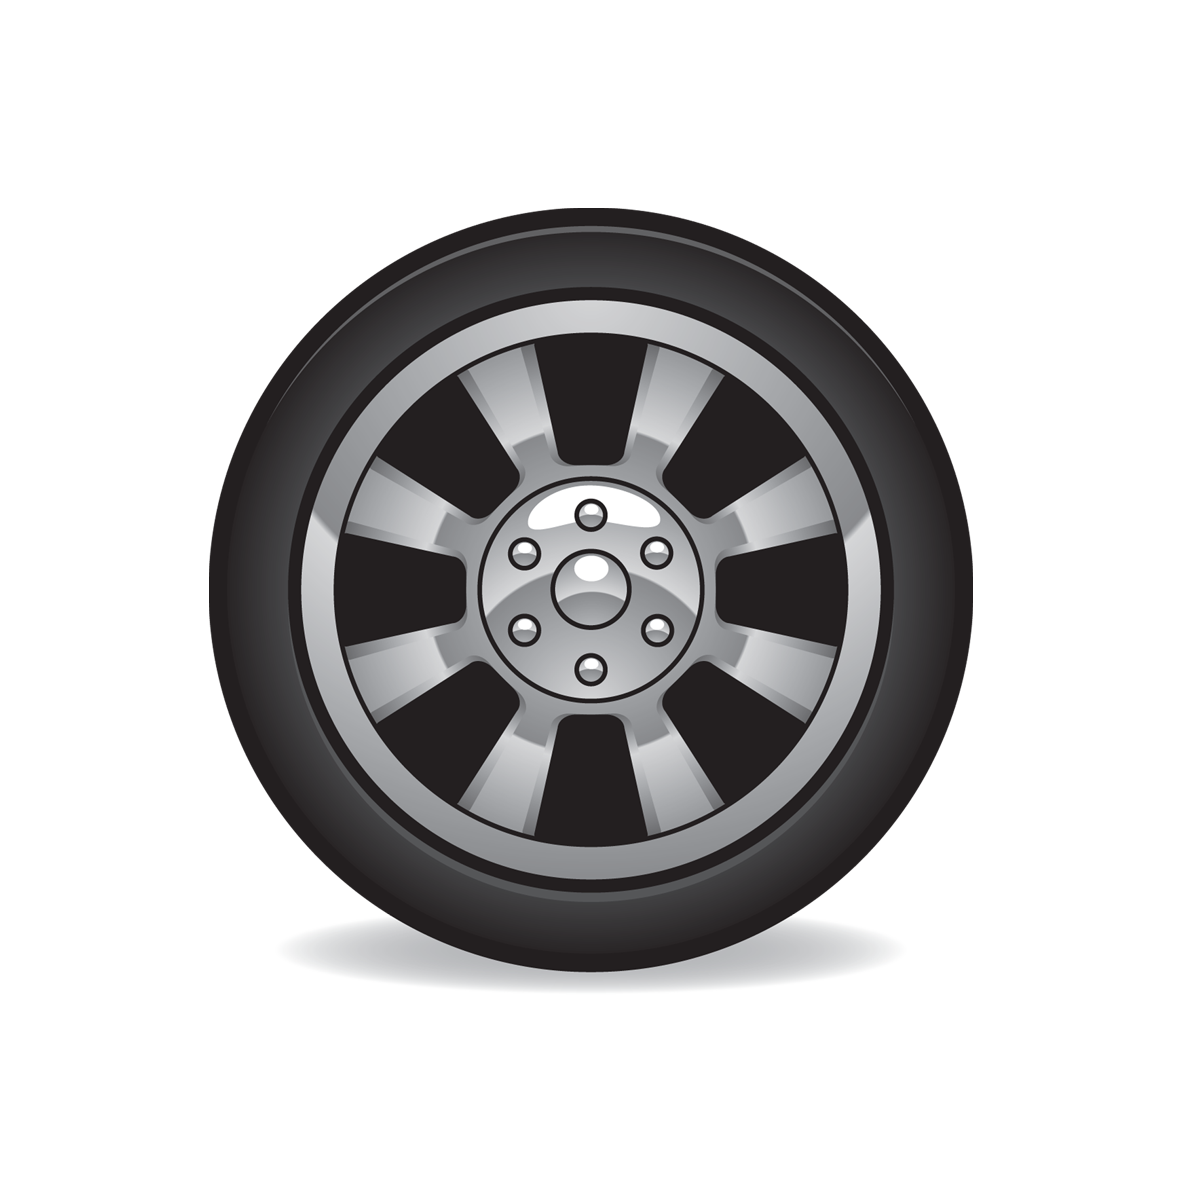 Tire Icon Full Size | Free Images at Clkerm  vector clip art